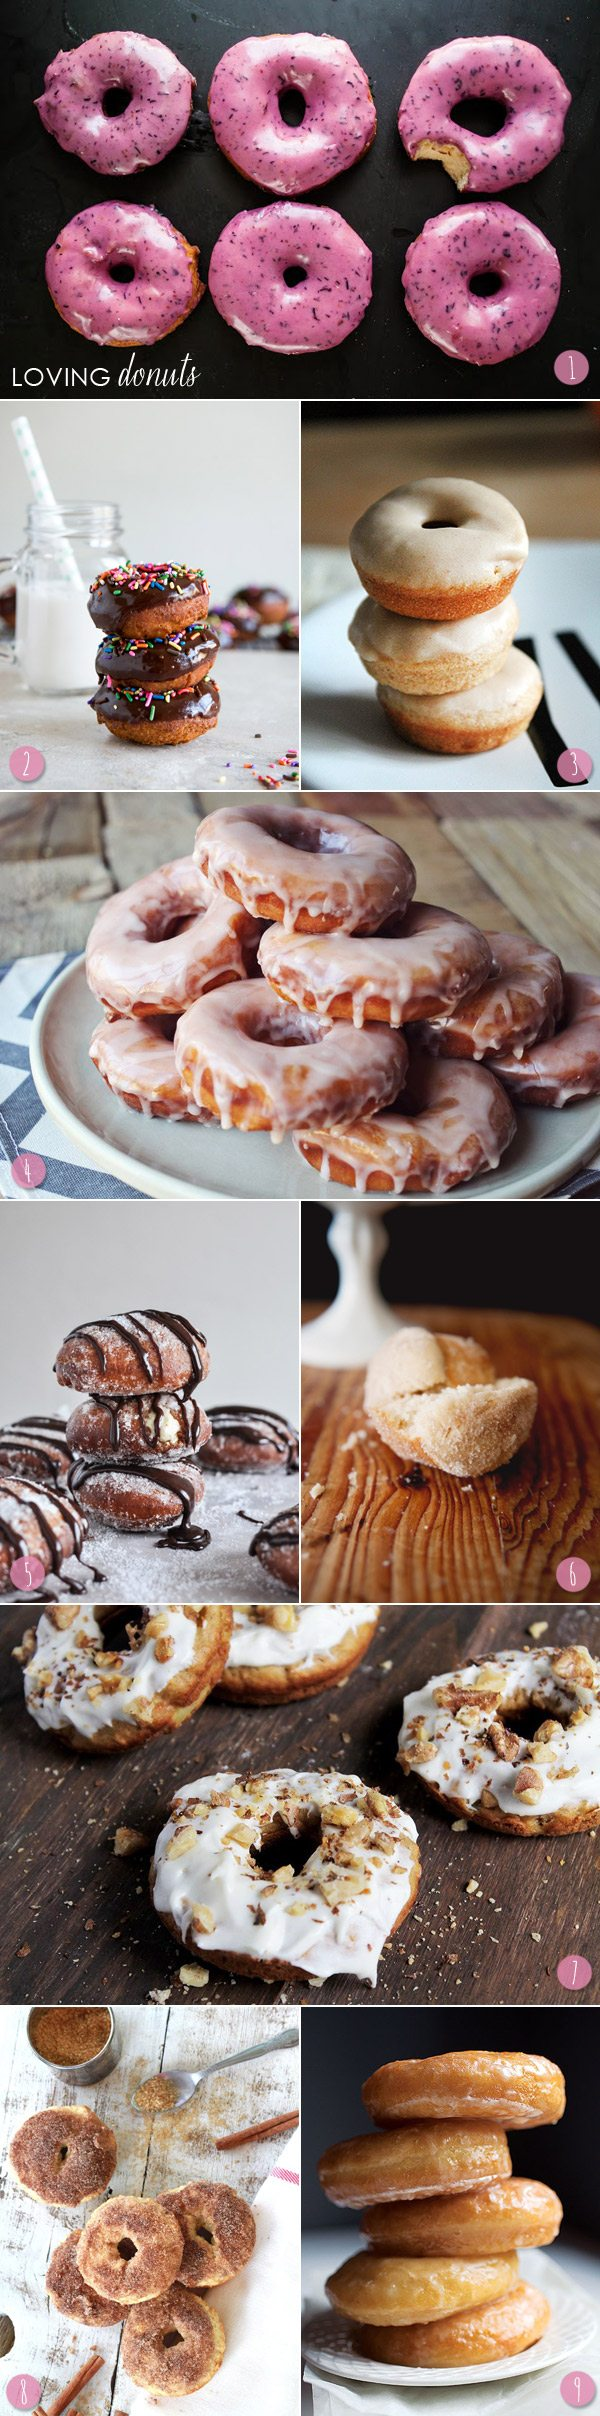 Loving Homemade Donuts